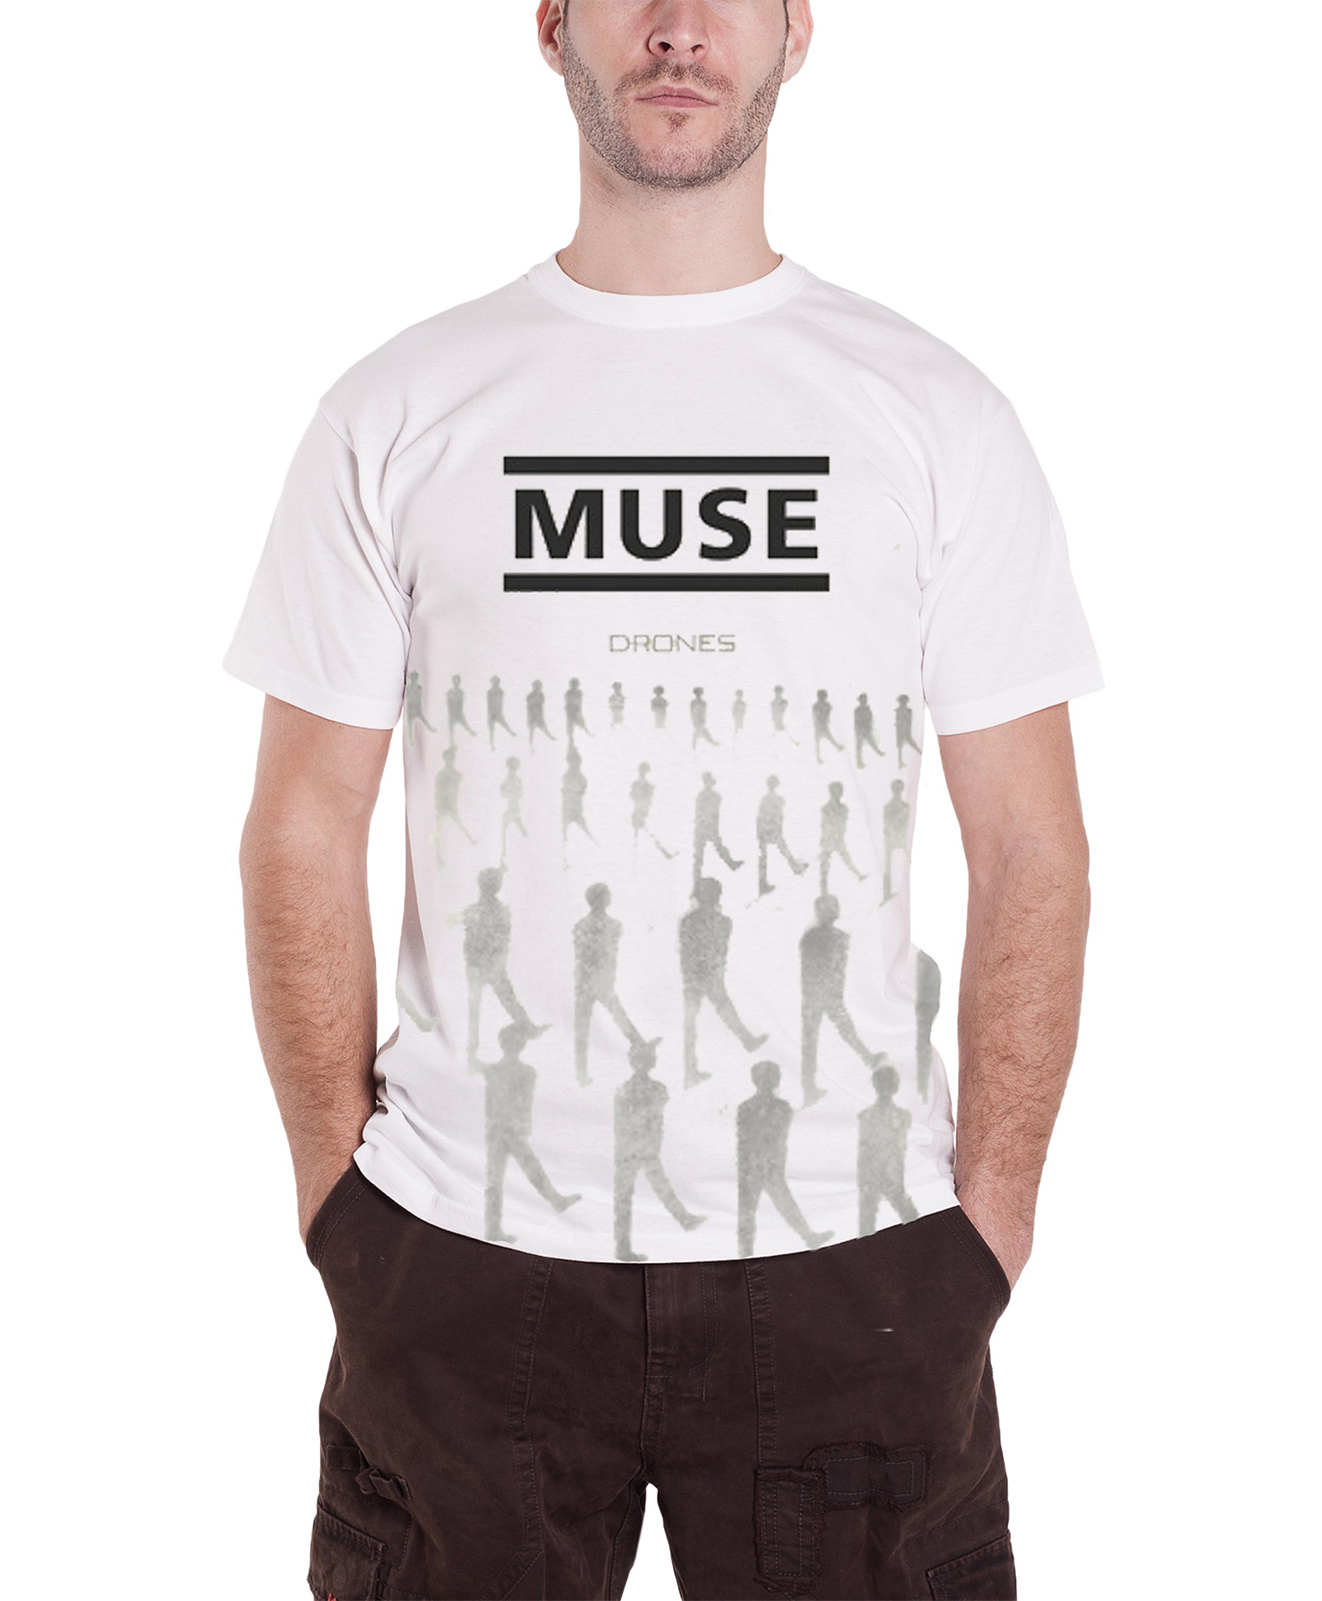 muse t shirt drones cover band logo absolution 2nd law new. Black Bedroom Furniture Sets. Home Design Ideas